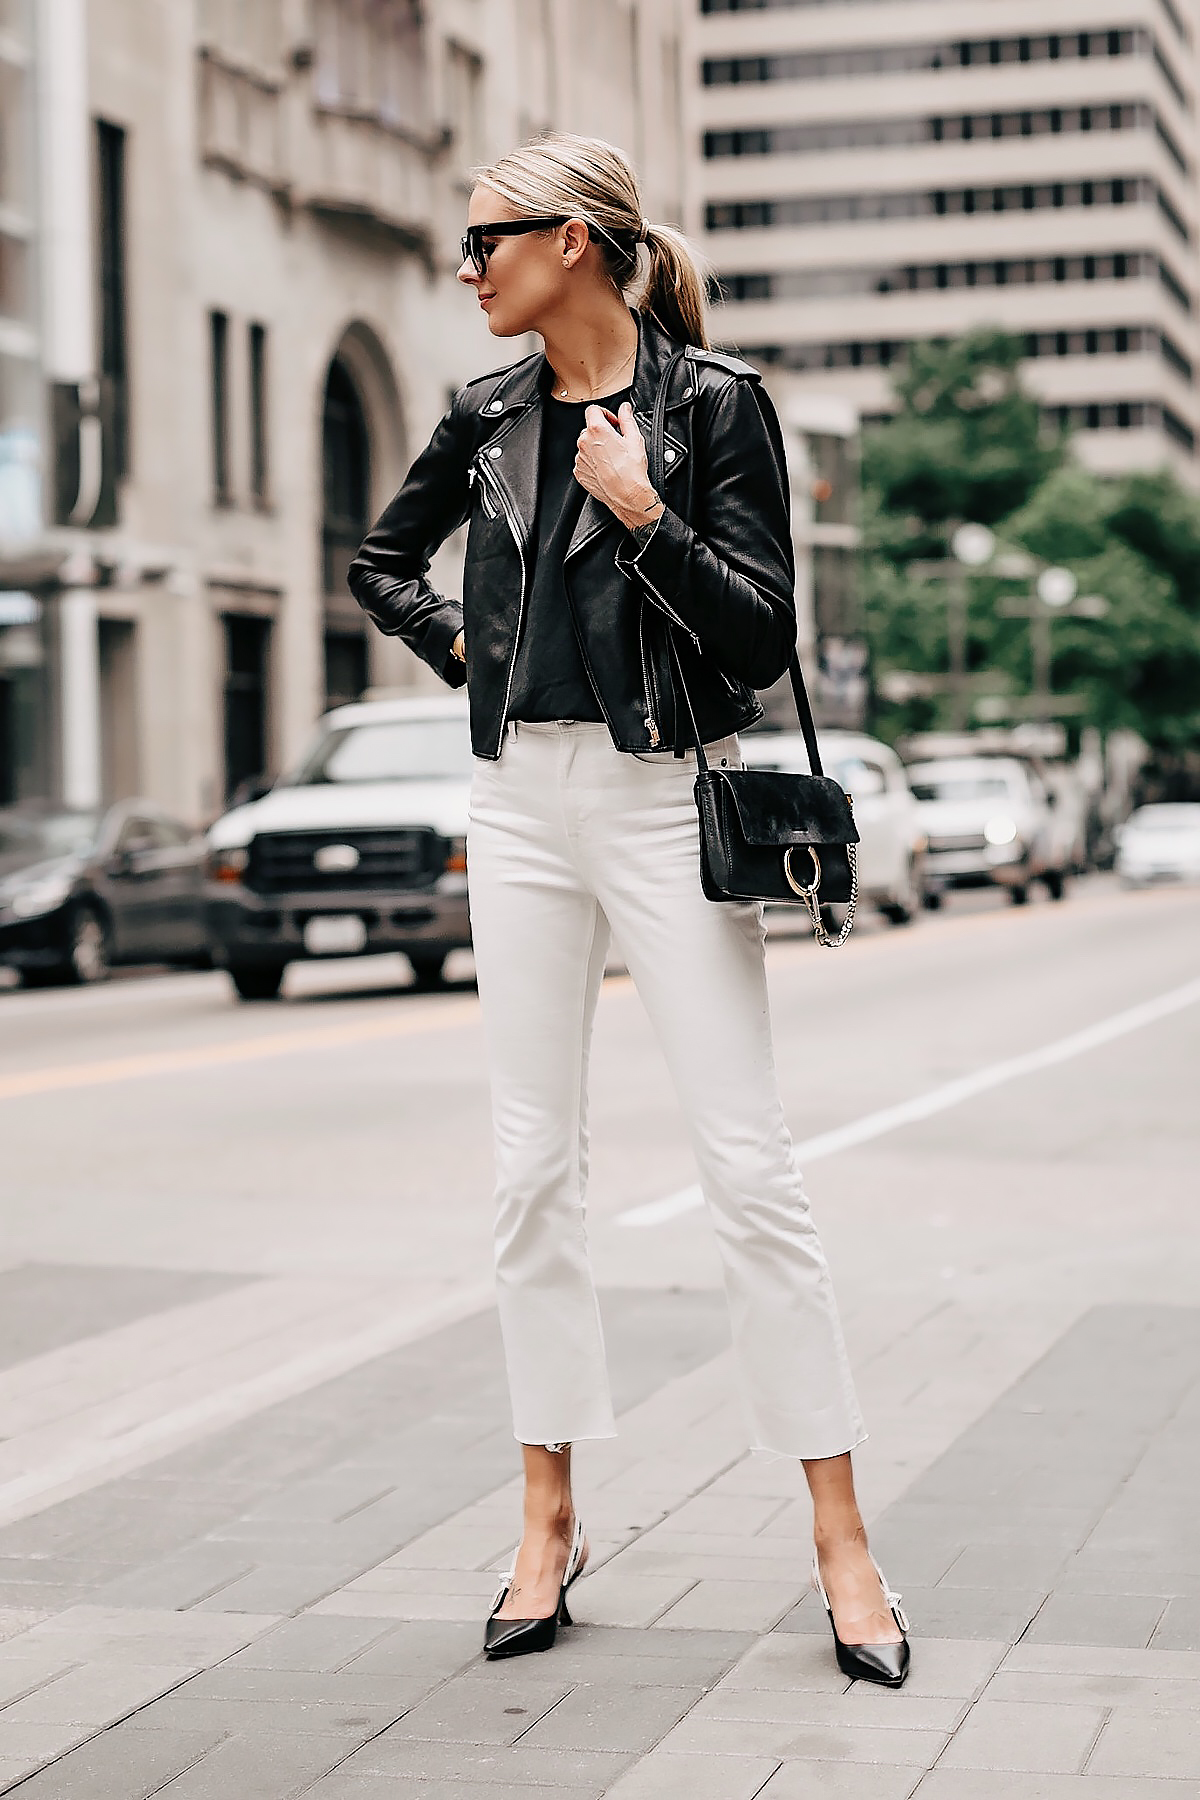 Blonde Woman Wearing Black Leather Jacket Black Top White Cropped Jeans Dior Slingback Heels Chloe Faye Black Handbag Fashion Jackson San Diego Fashion Blogger Street Style